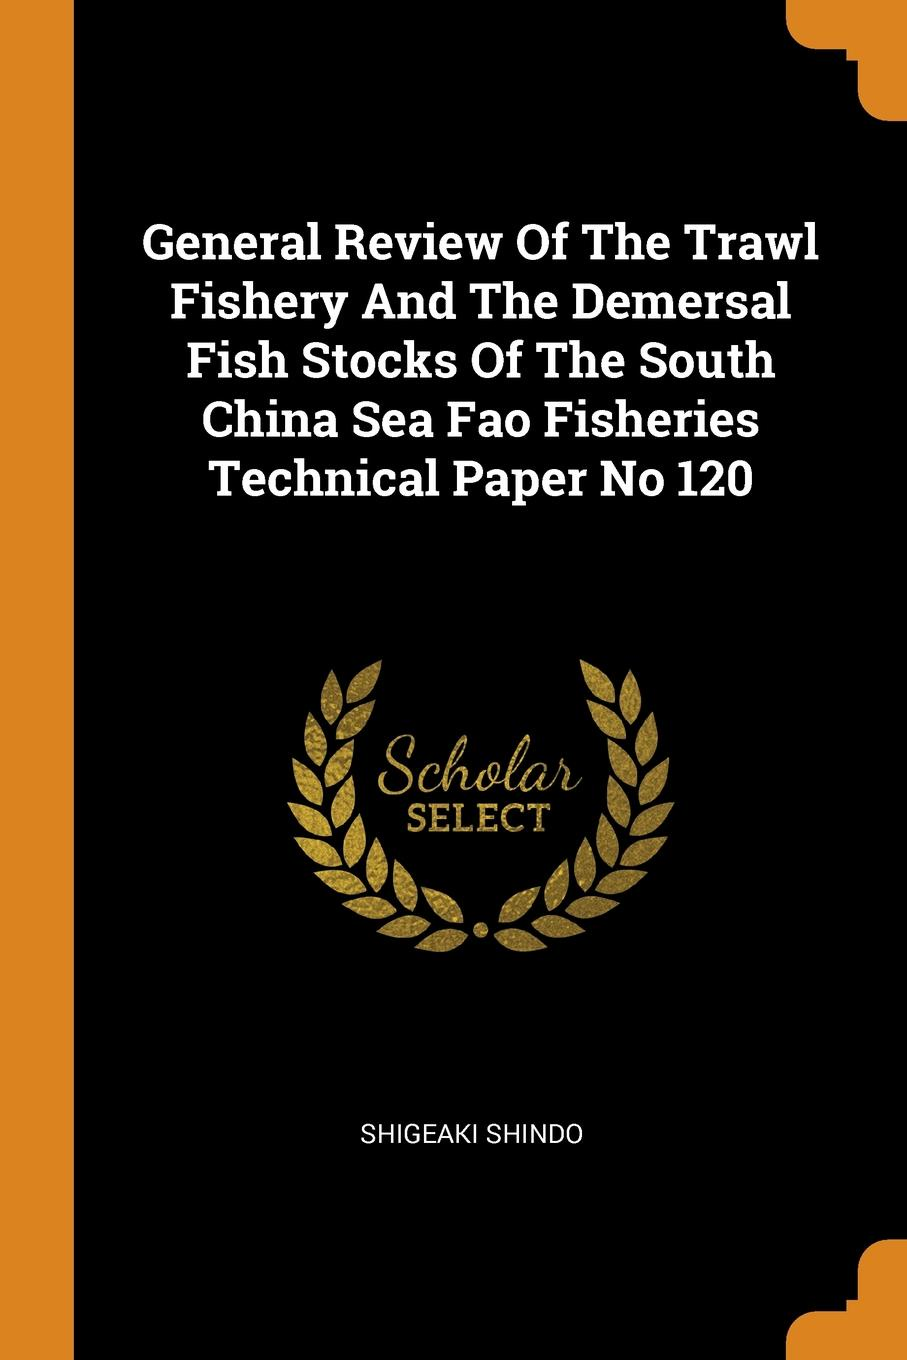 Shigeaki Shindo General Review Of The Trawl Fishery And Demersal Fish Stocks South China Sea Fao Fisheries Technical Paper No 120